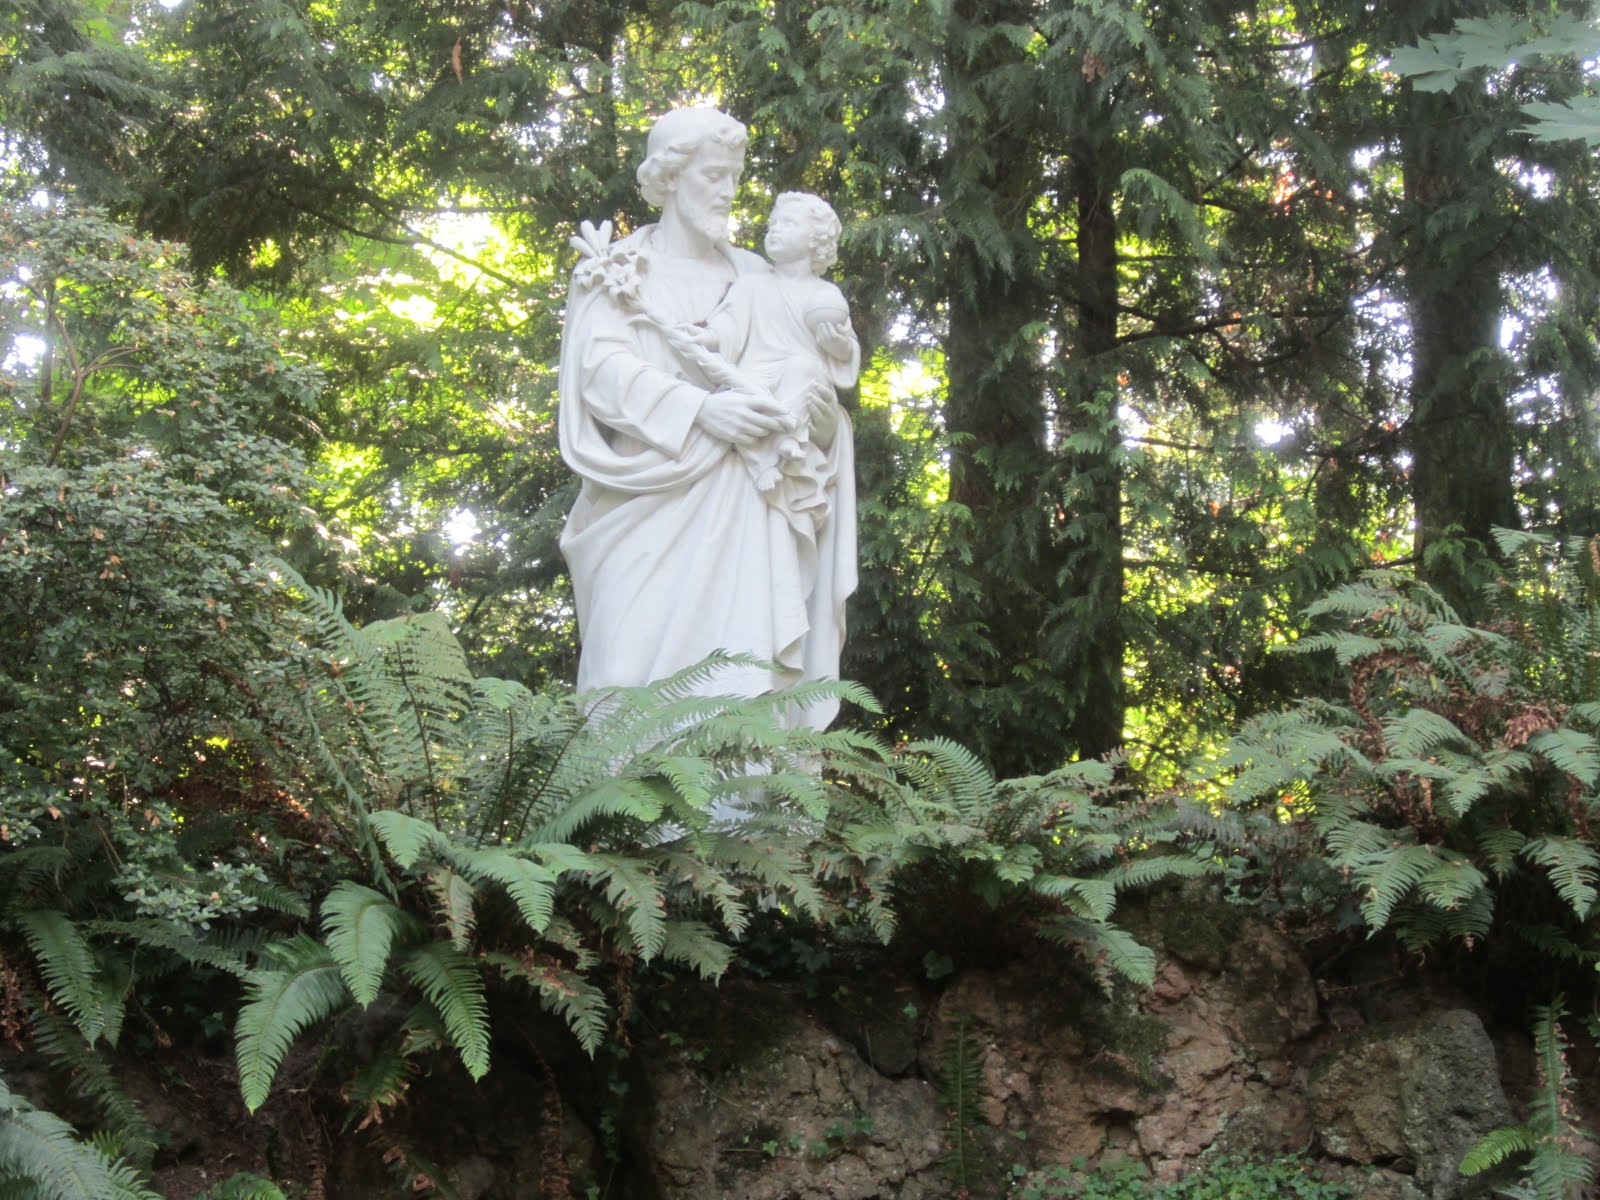 Sprouts the grotto the natural santuary of our sorrowful for Garden statues portland oregon